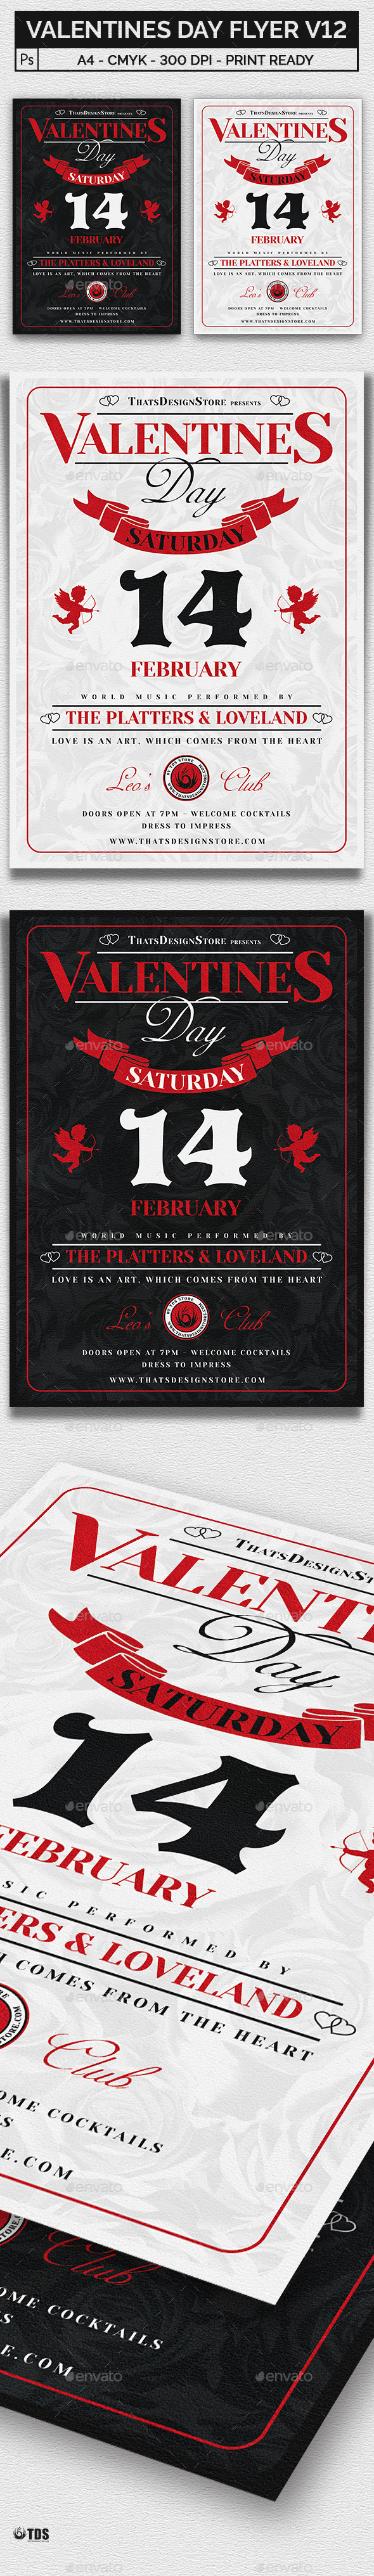 Valentines Day Flyer Template V12 - Clubs & Parties Events